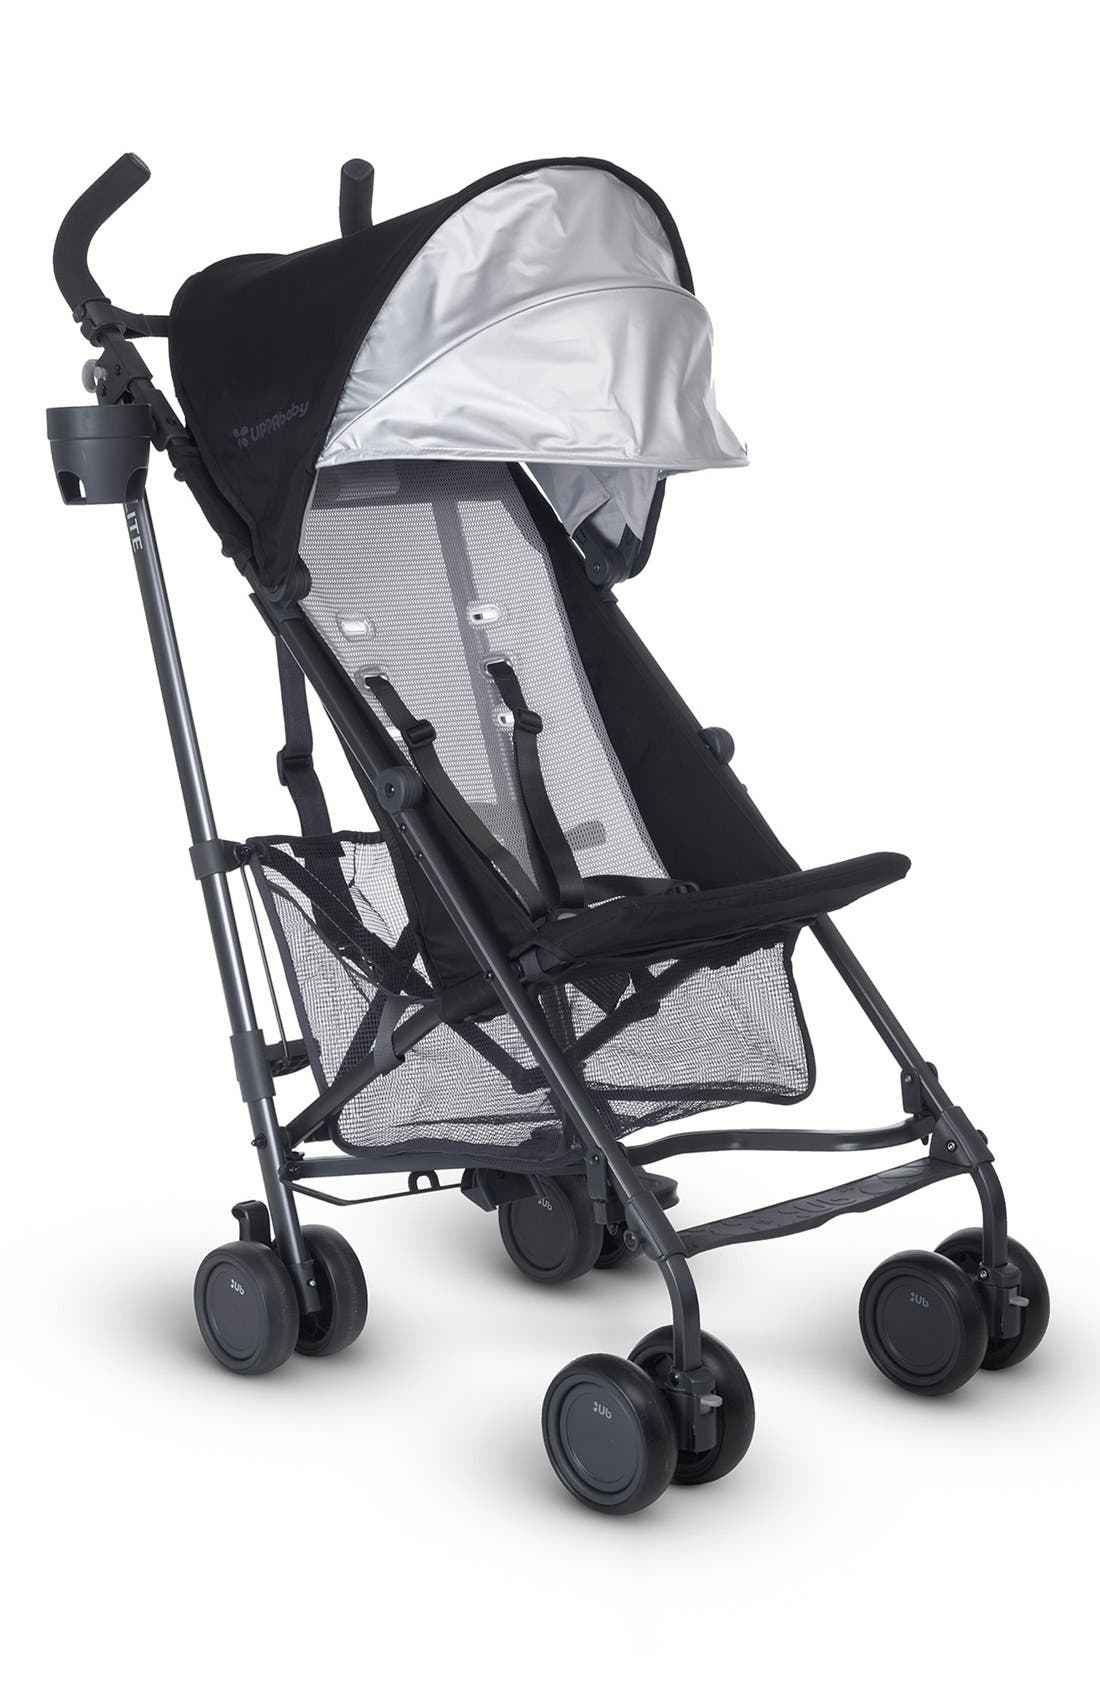 G-LITE - Black Frame Stroller,                             Alternate thumbnail 2, color,                             Jake Black/ Carbon